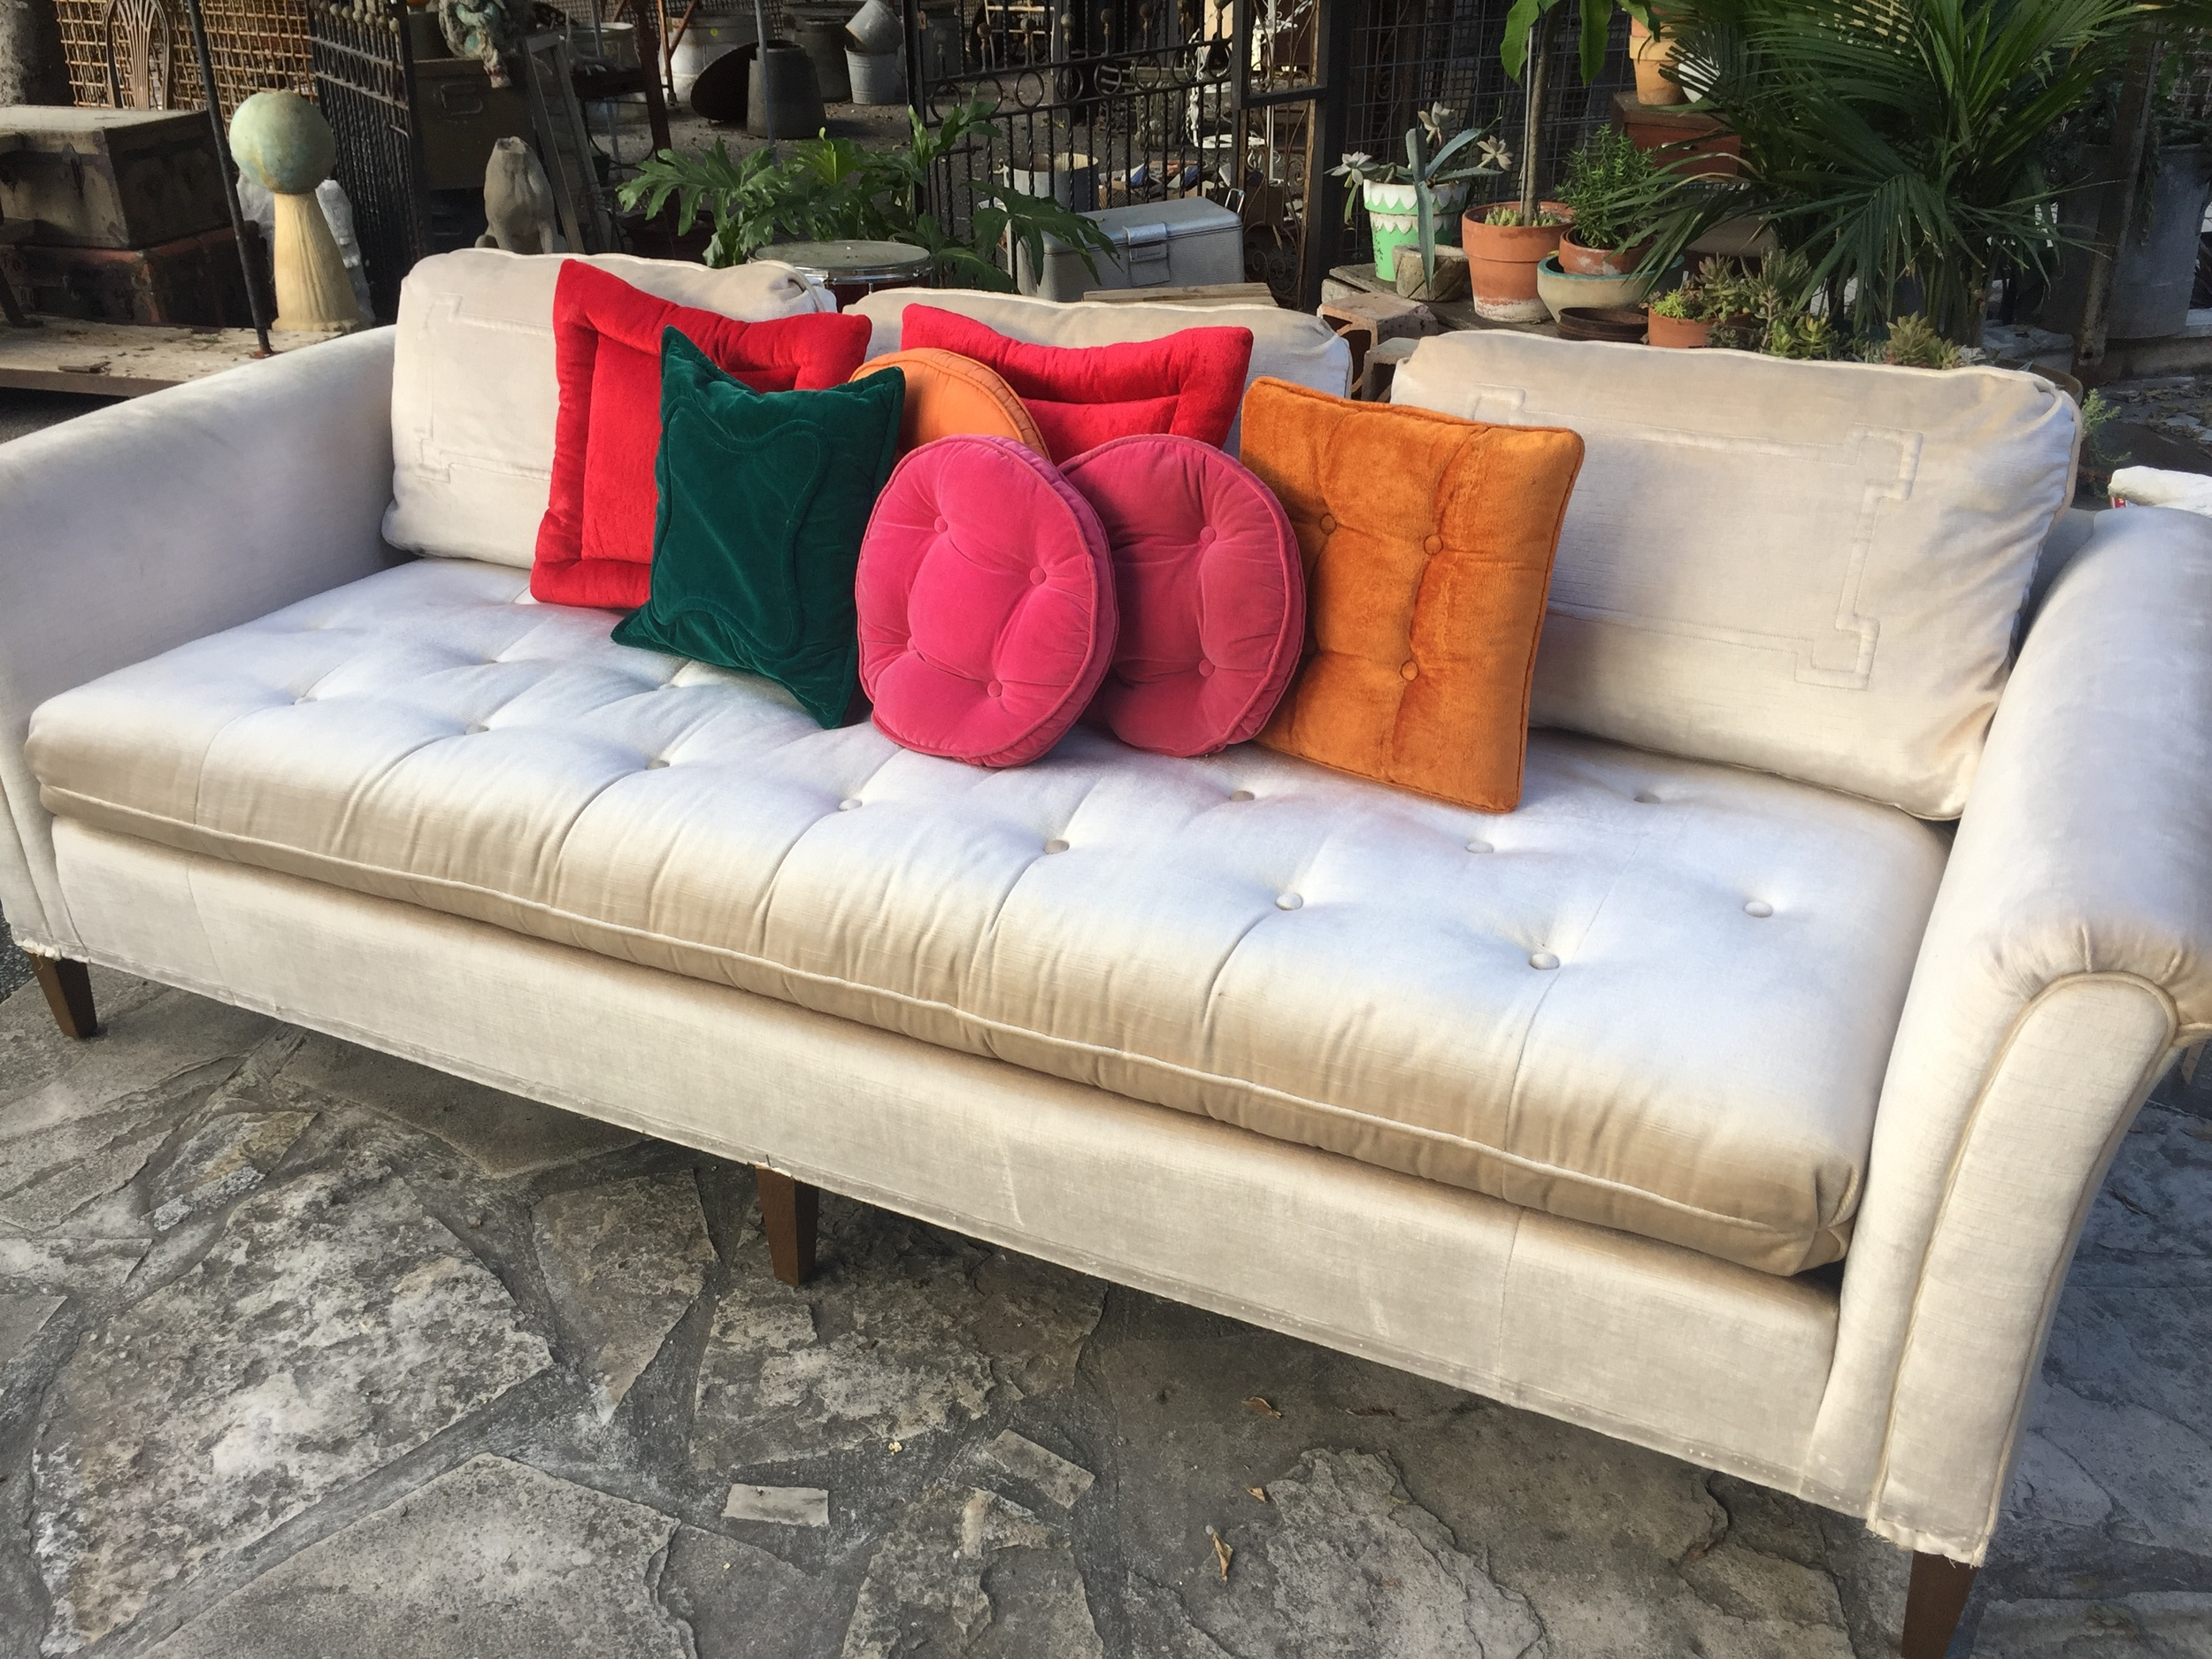 With a pop of colorful pillows.